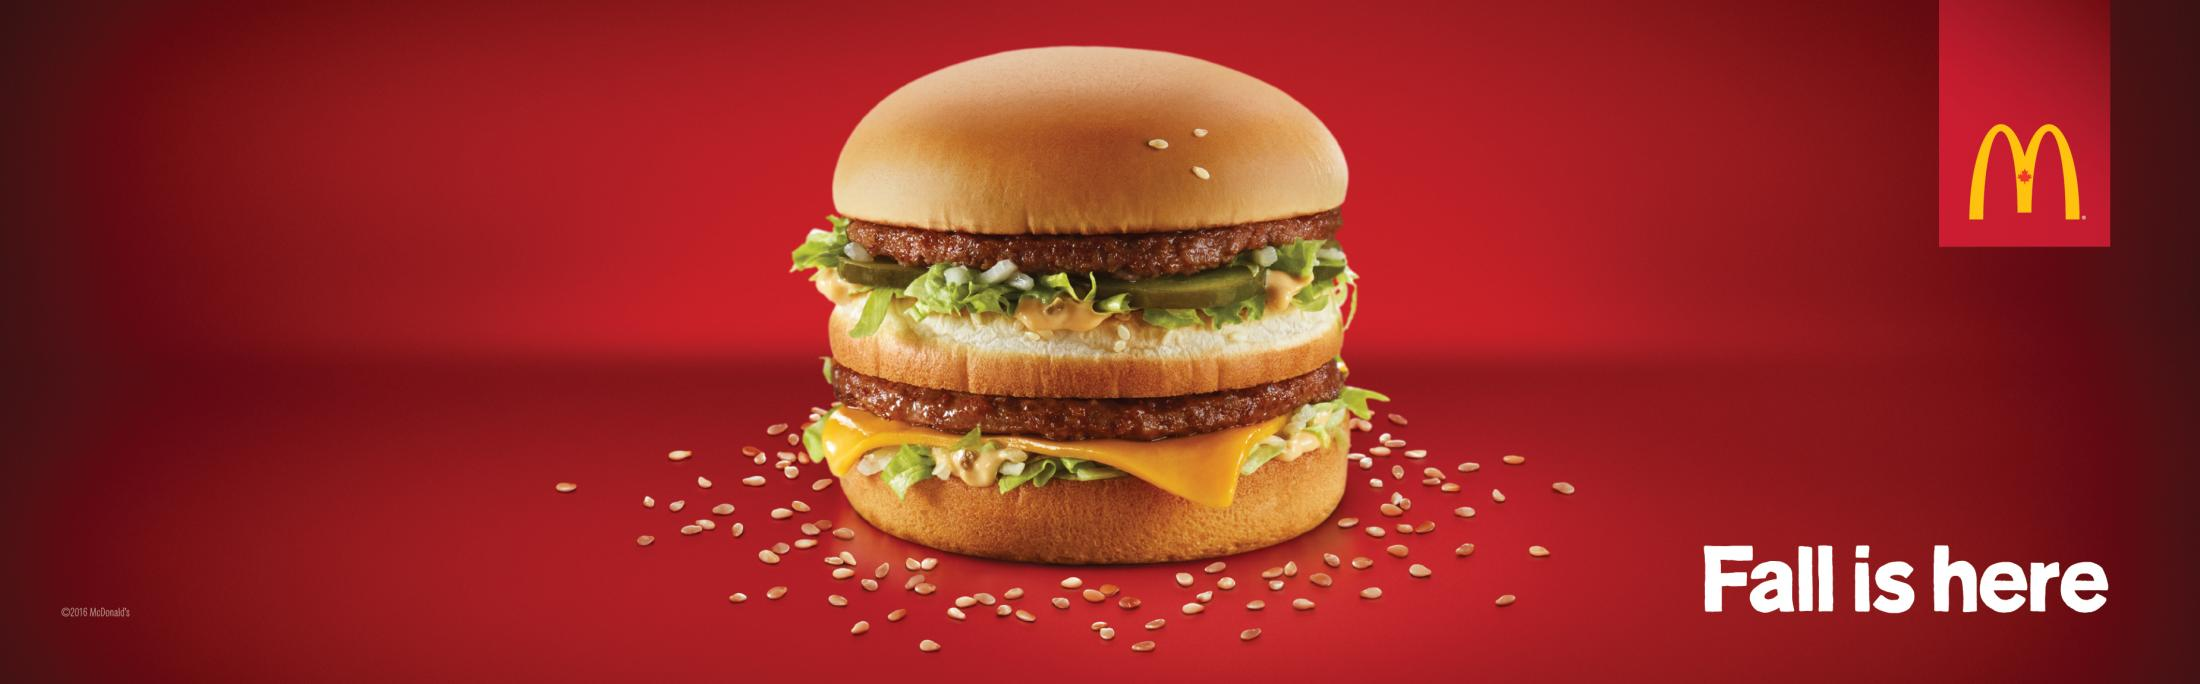 McDonald's Print Ad - Fall is here